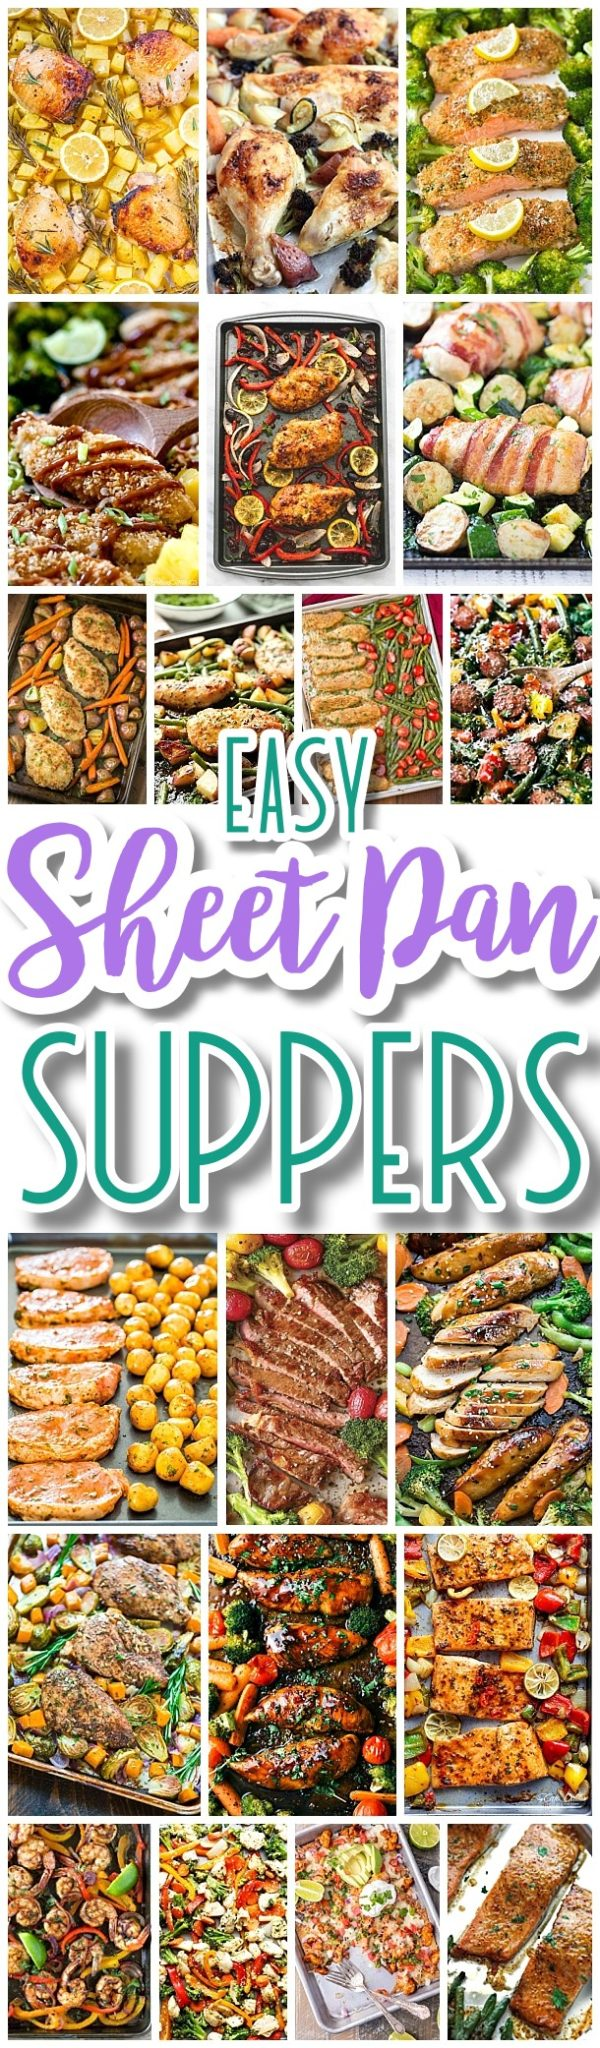 The BEST Sheet Pan Suppers Recipes - Easy and Quick Family Lunch and Simple Dinner Meal Ideas using ONE baking PAN - Dreaming in DIY